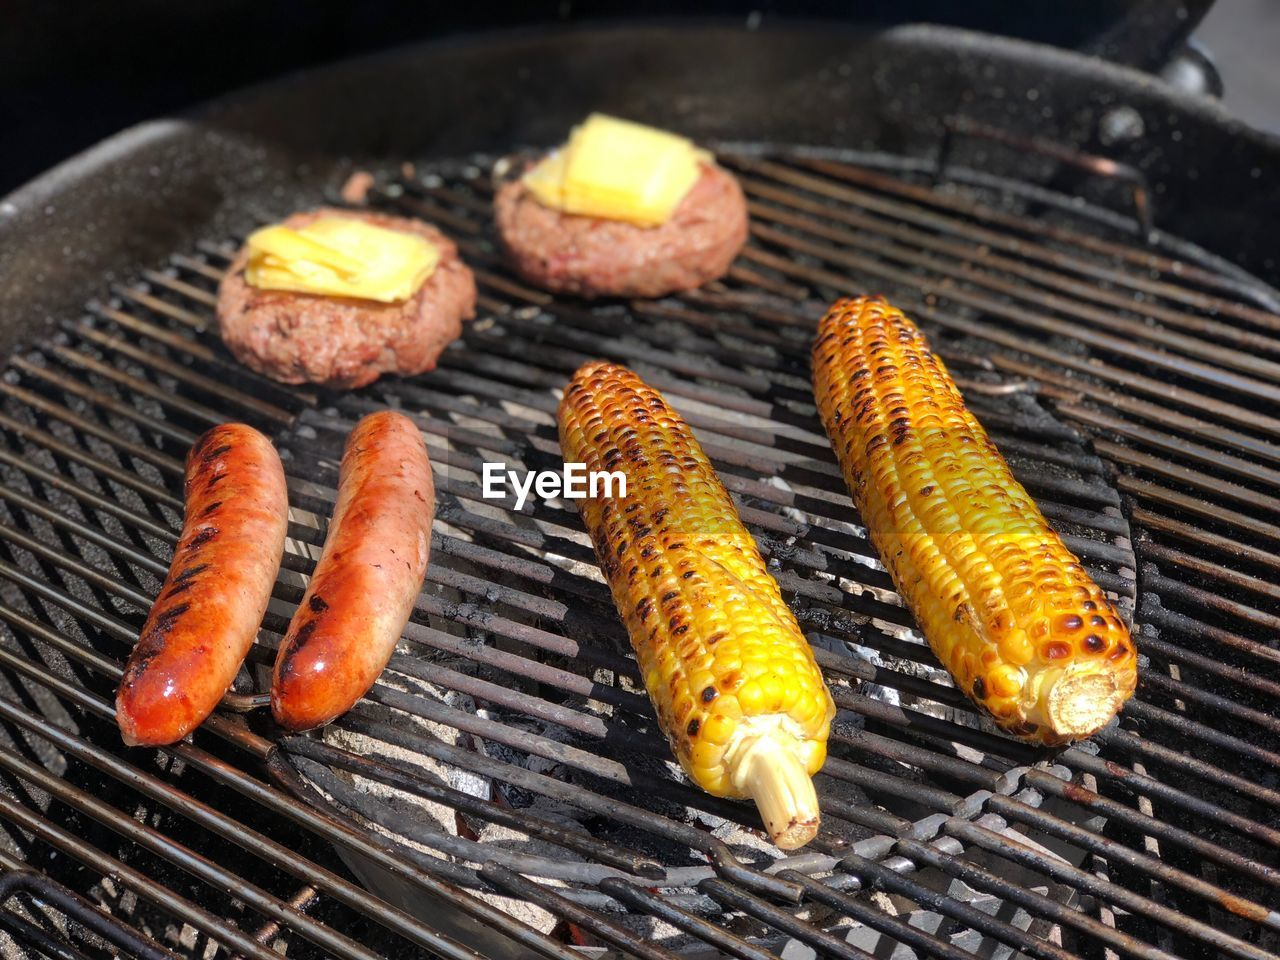 barbecue, food, food and drink, barbecue grill, grilled, preparation, meat, freshness, heat - temperature, close-up, no people, high angle view, sausage, preparing food, healthy eating, focus on foreground, day, metal, wellbeing, vegetable, outdoors, sweetcorn, hot dog, dinner, snack